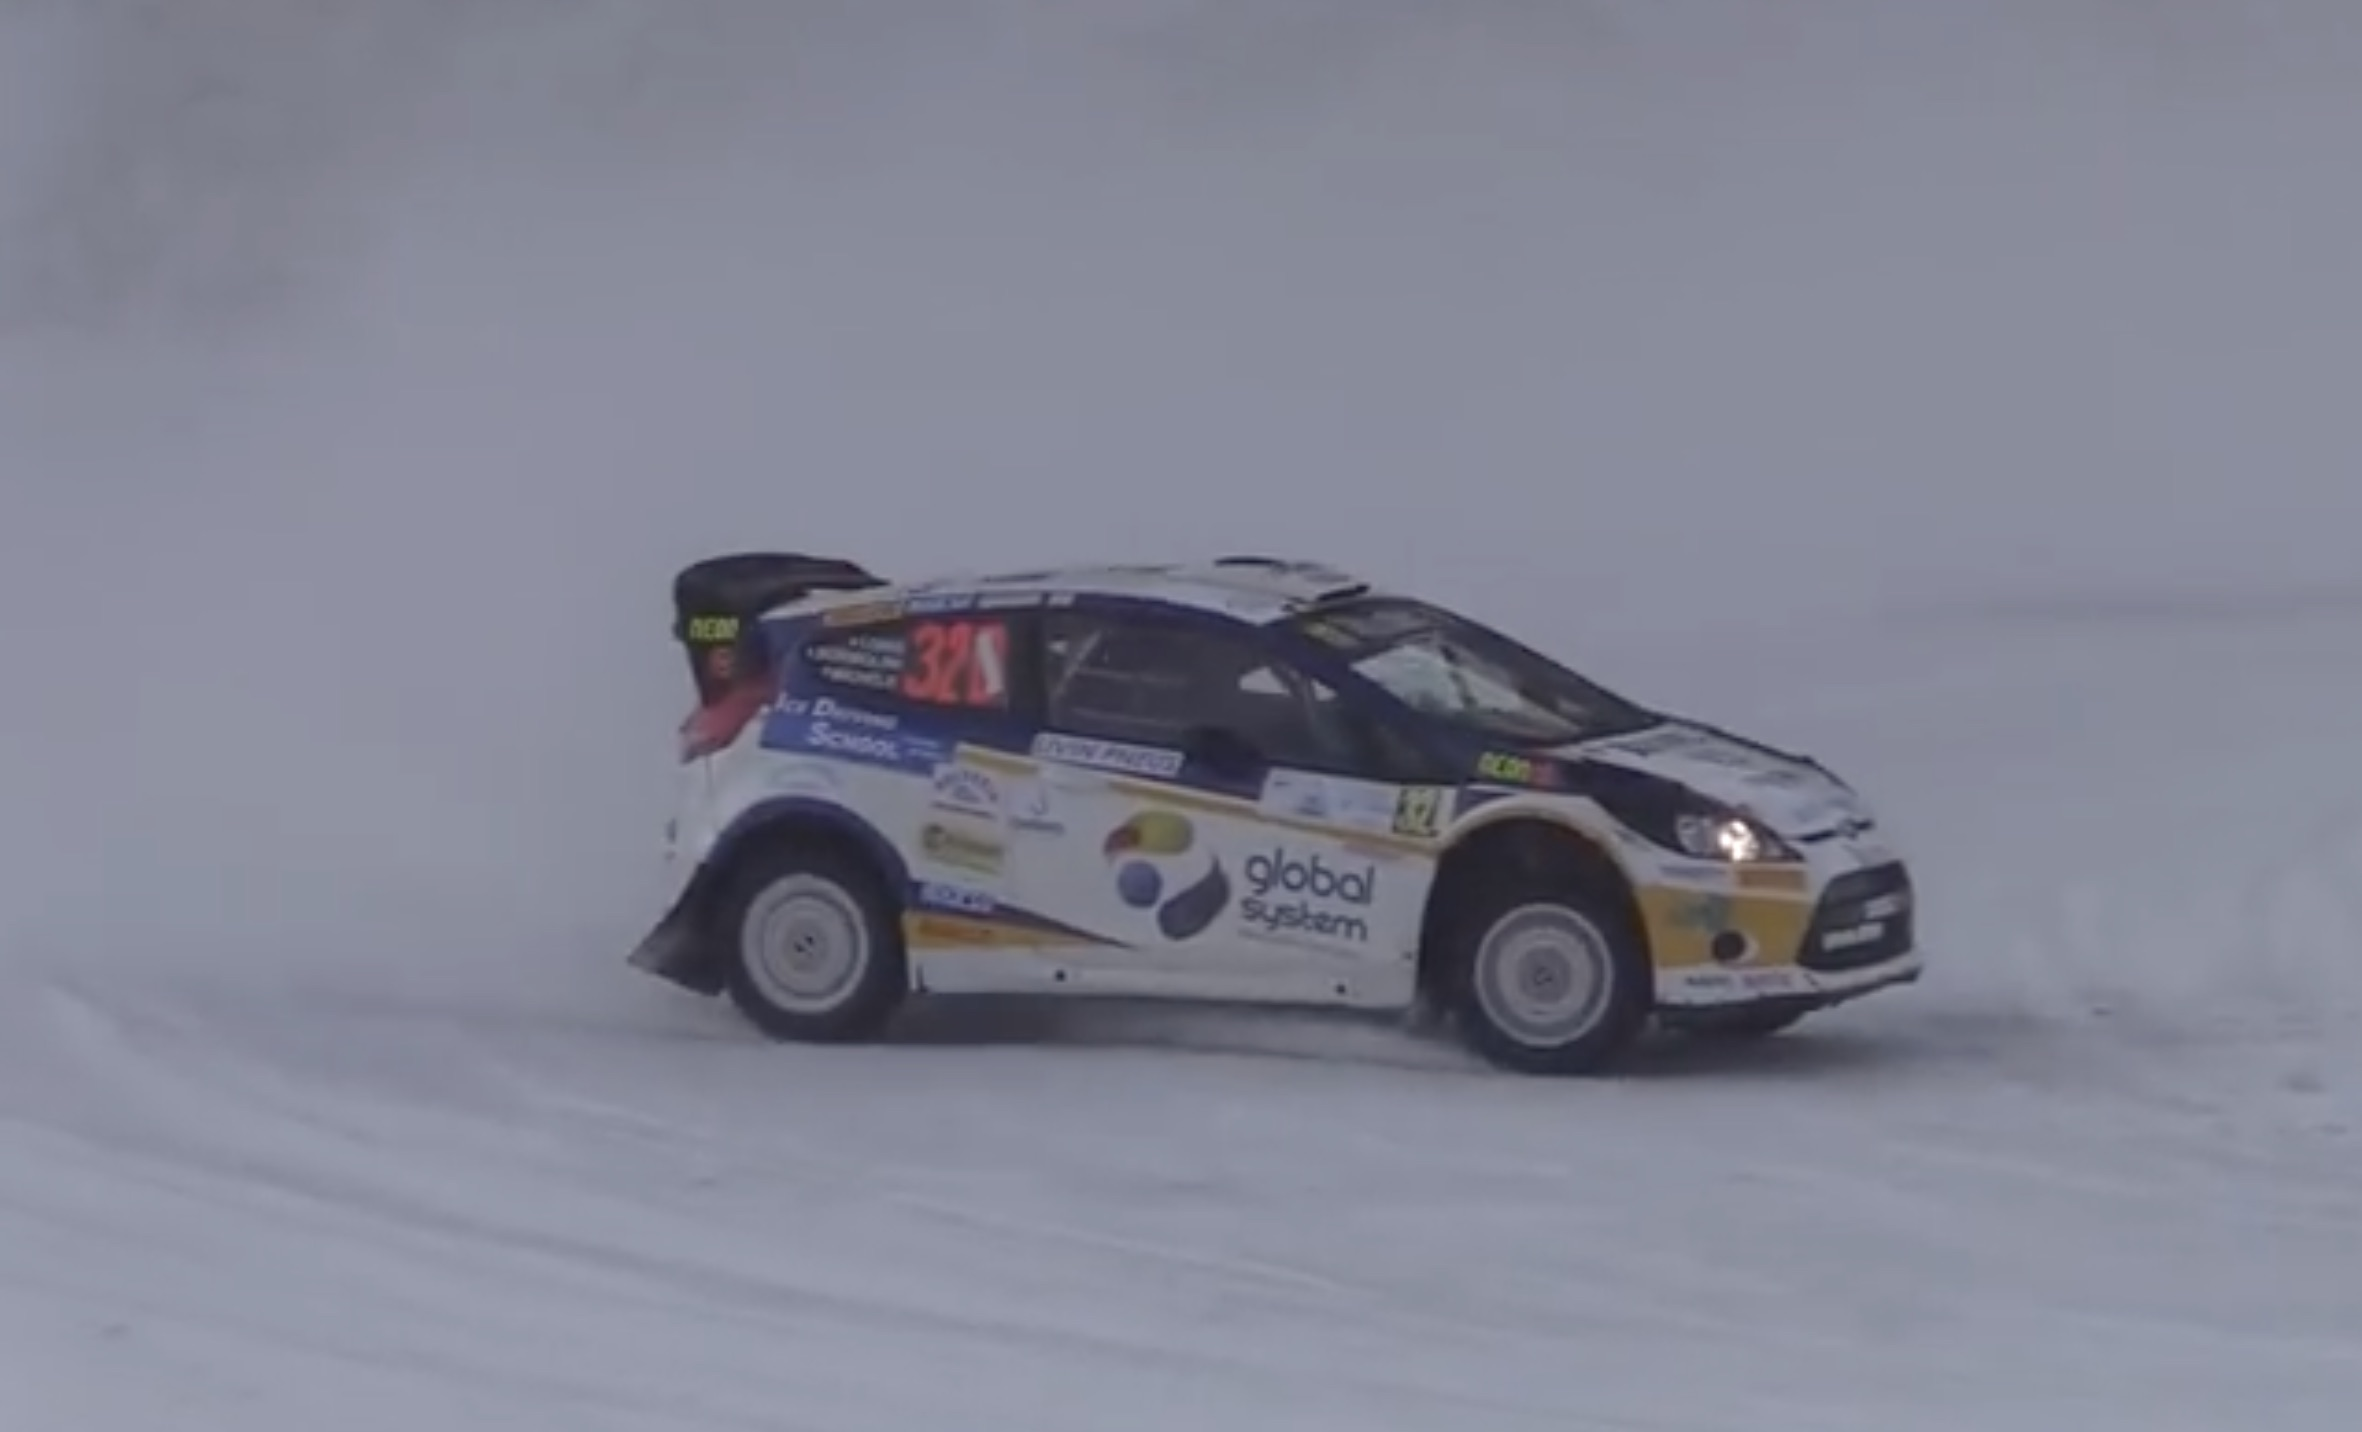 Morning Symphony: Retired Rally Cars On Snow! Watch As A Ford Focus RS, Ford Fiesta WRC And Peugeot 206 Go Play!